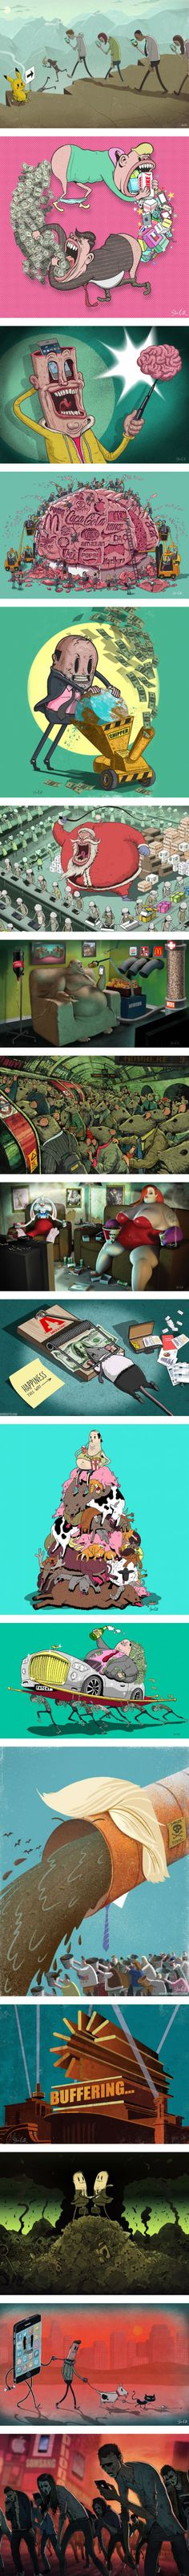 Modern World Nowadays Illustrated by Steve Cutts